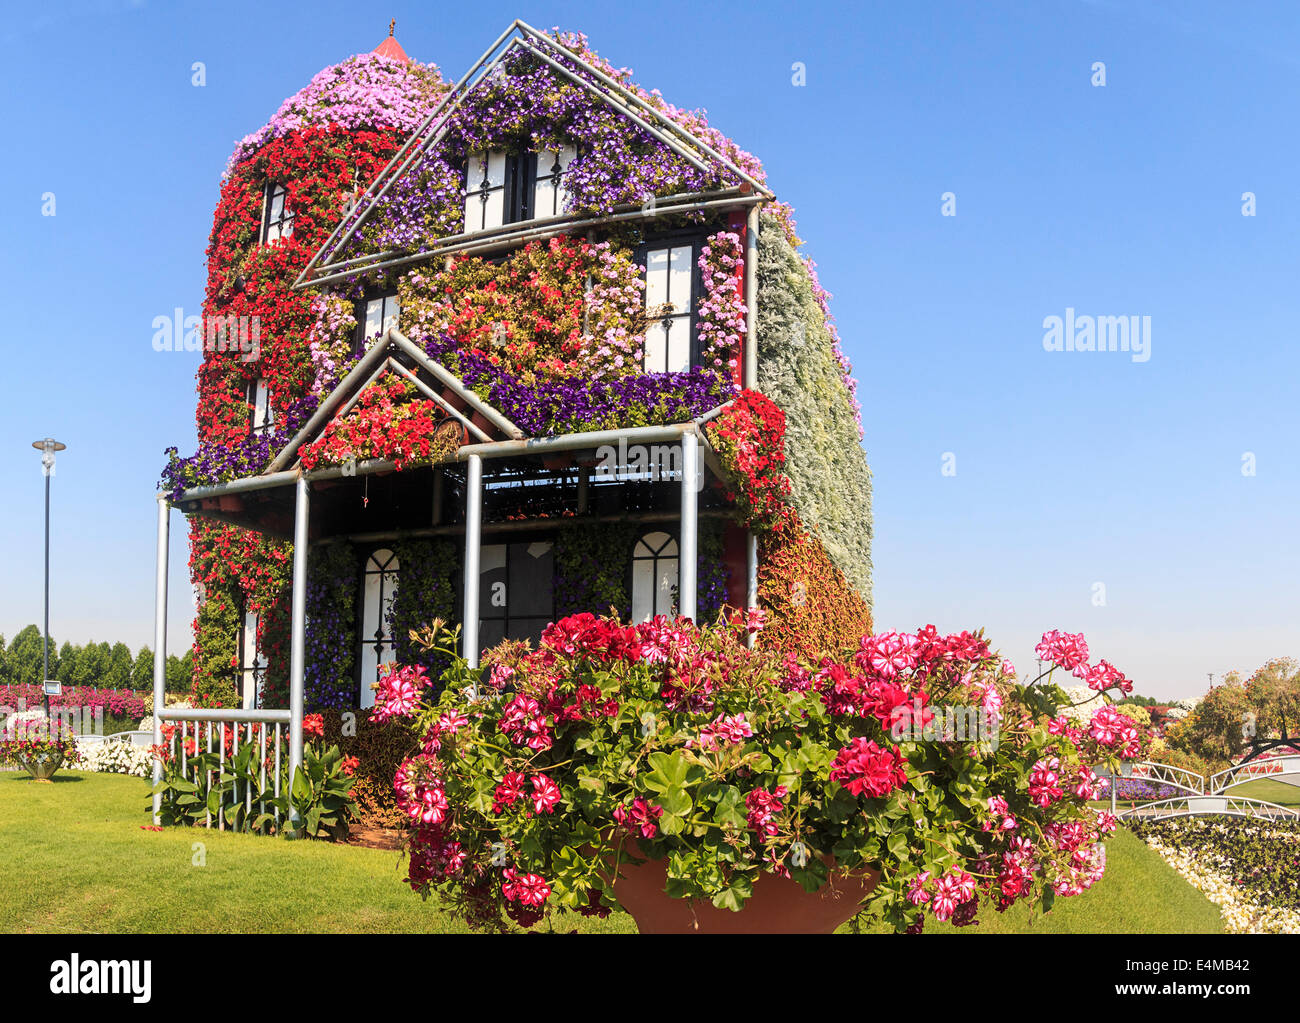 House covered in flowers at Dubai's Miracle Garden, largest